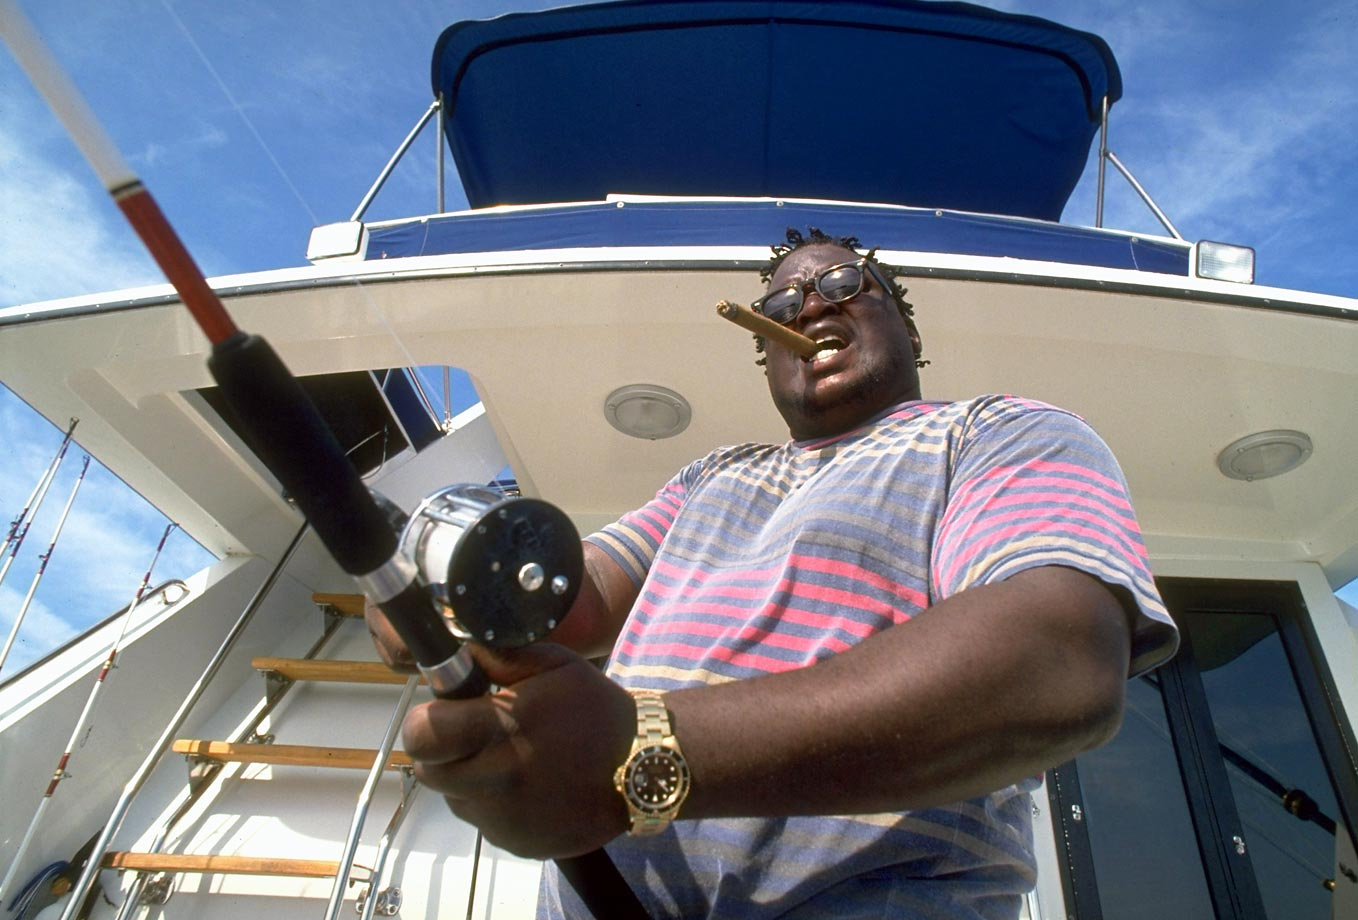 The former heavyweight champion fishes on his boat in Key West in 1993. More than three years earlier, Douglas had knocked out unbeaten champion Mike Tyson to stun the boxing community.